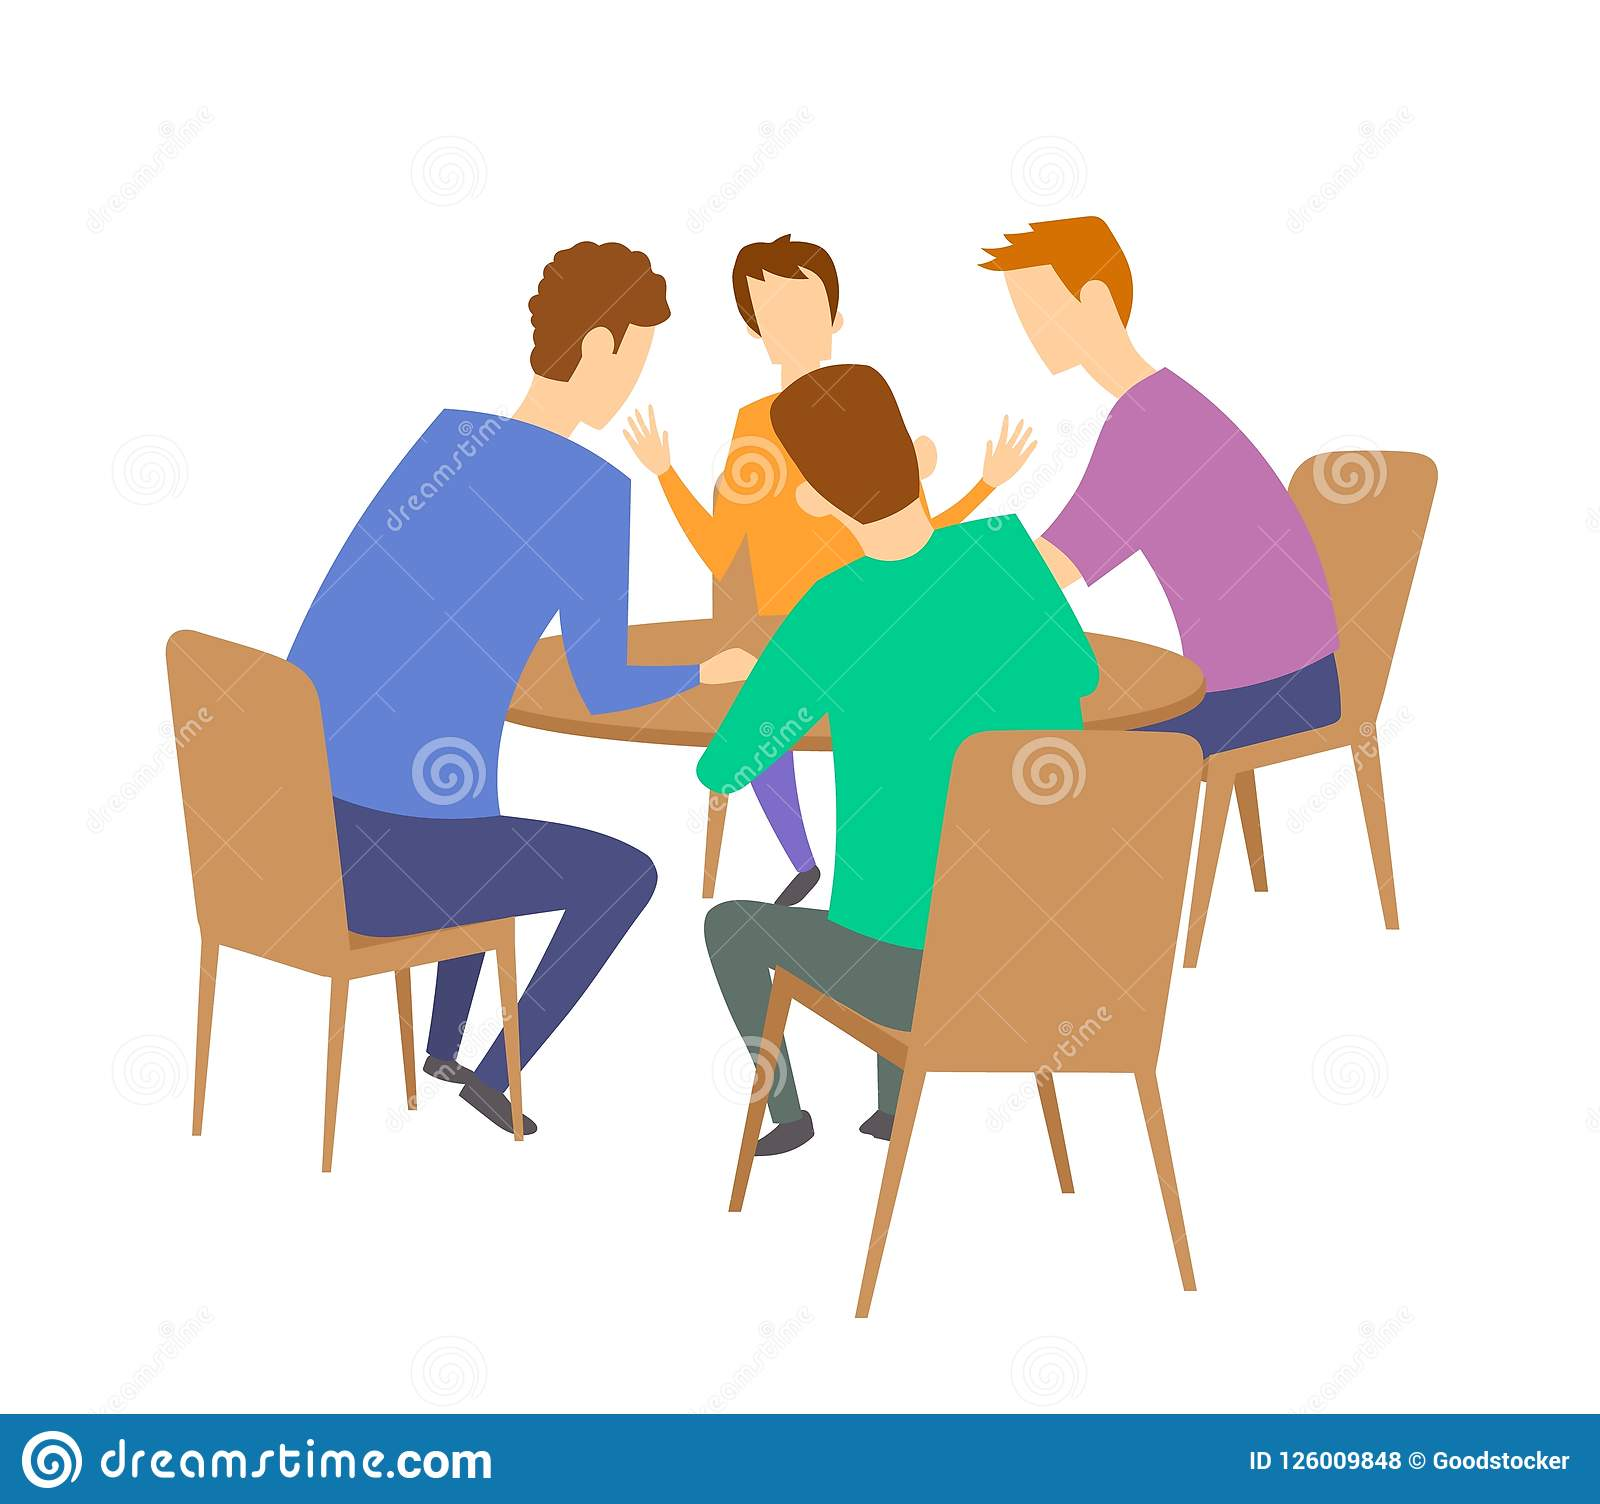 Group of four young people having discussion at the table. Brainstorming. Flat vector illustration. Isolated on white